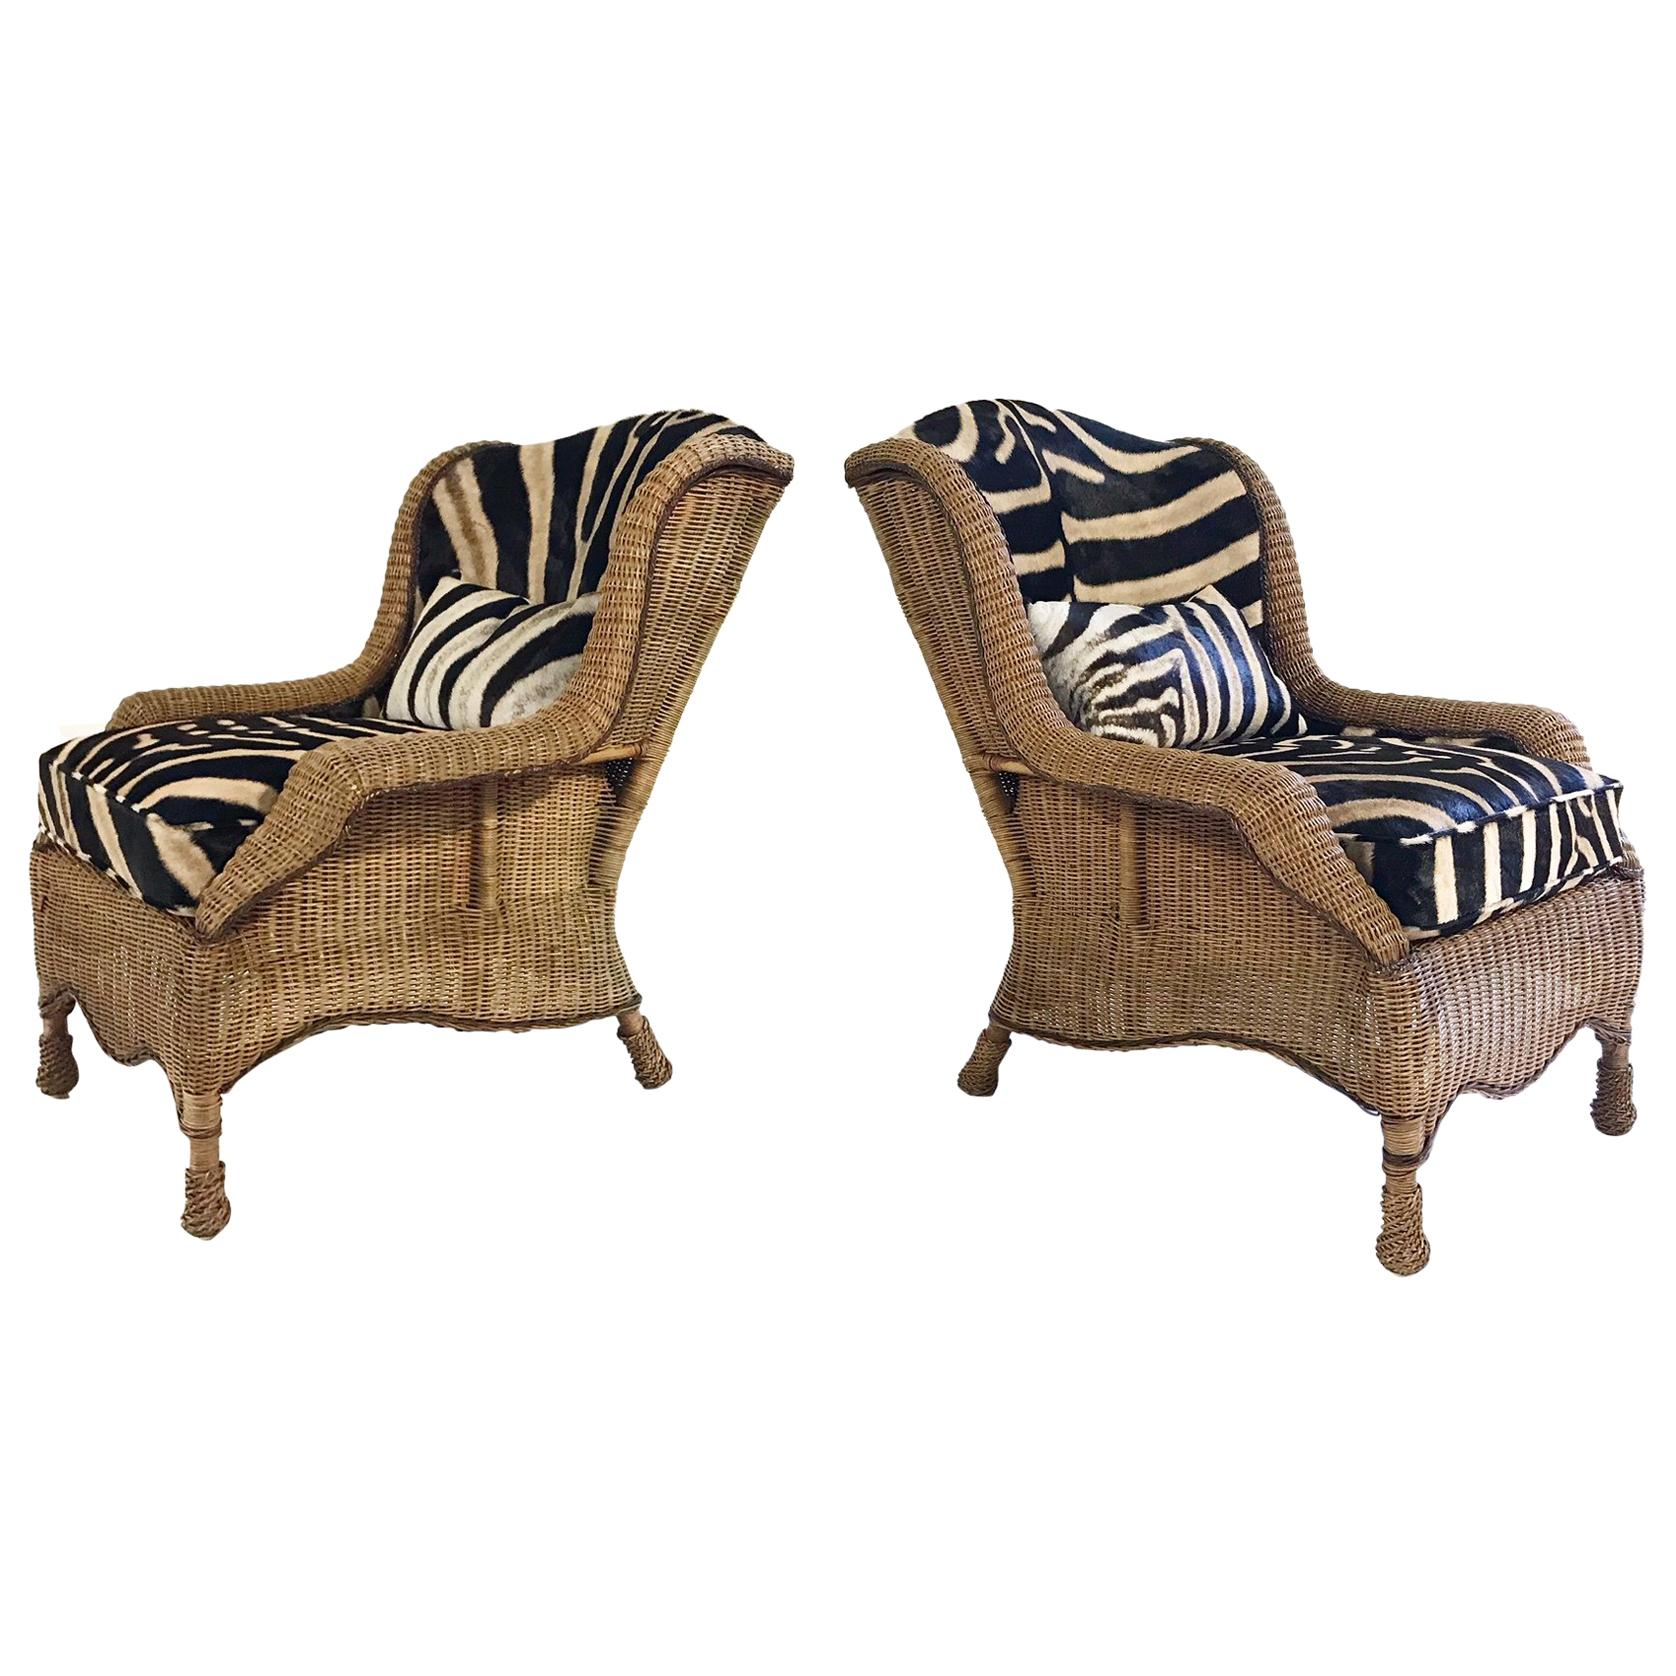 wicker wingback chairs pink rocking chair cushions vintage ralph lauren restored in zebra hide pair for sale